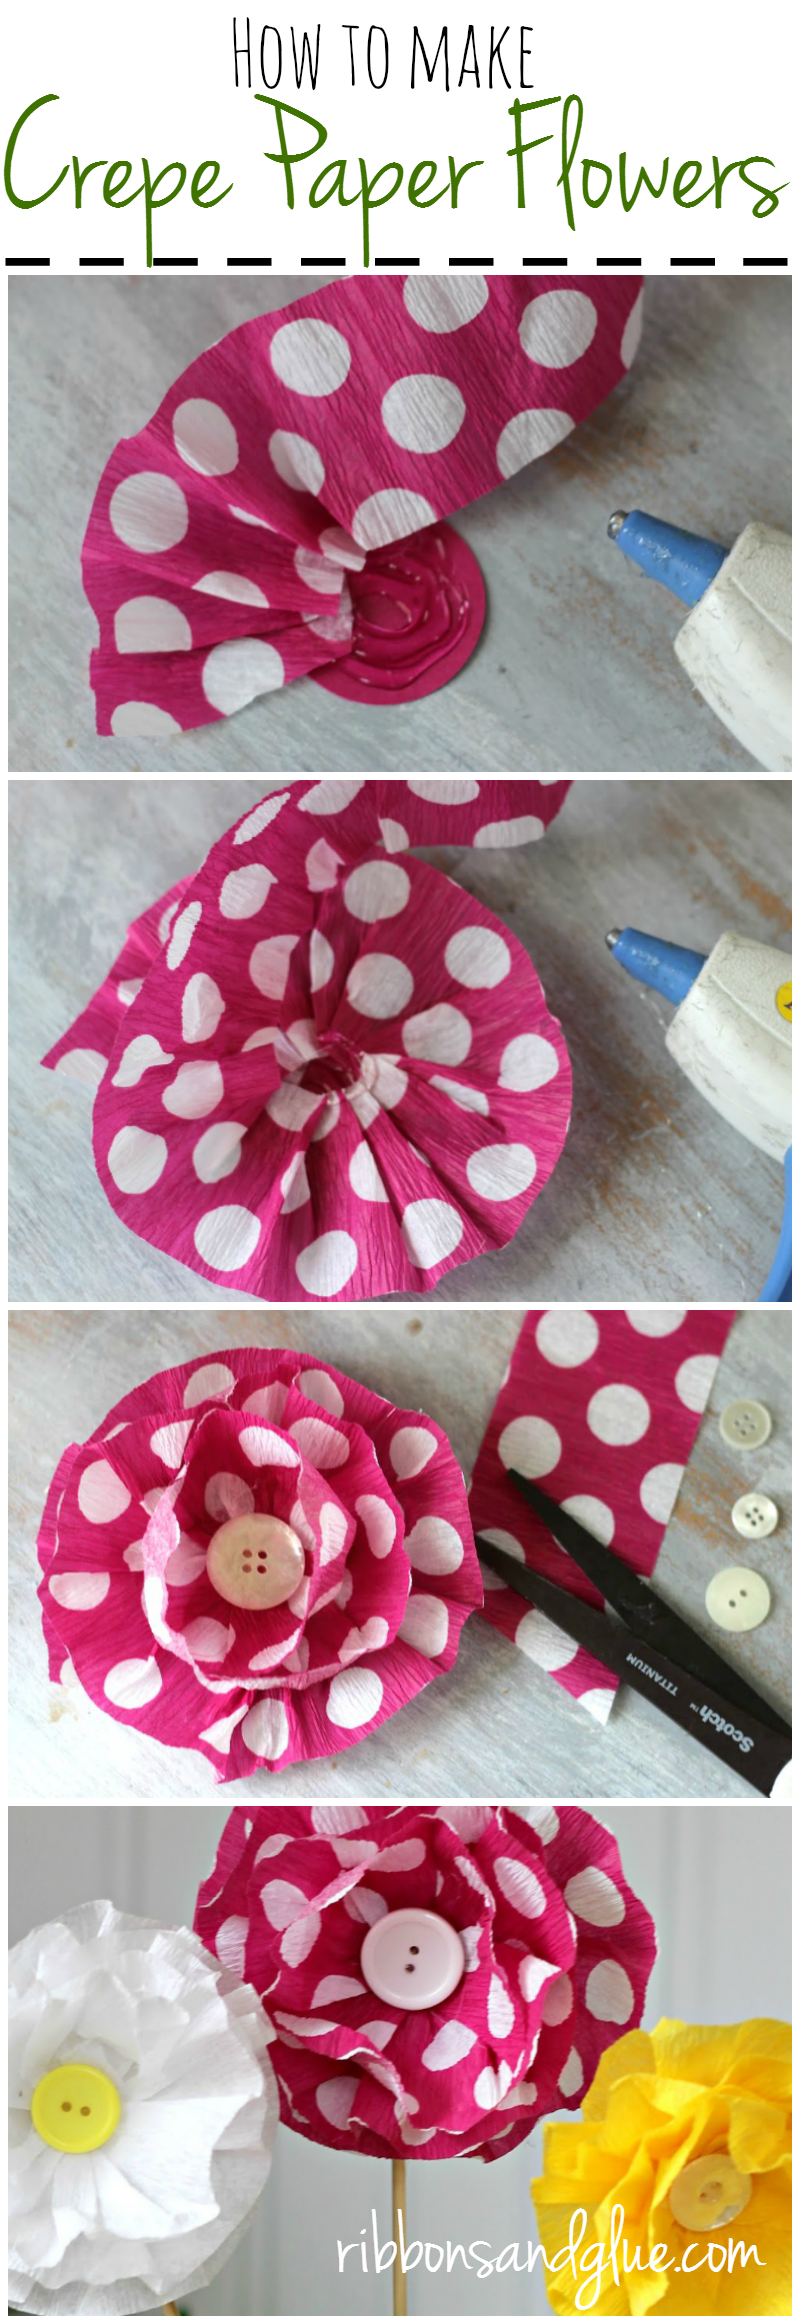 How To Make Crepe Paper Flowers Dollar Store Crafts Pinterest